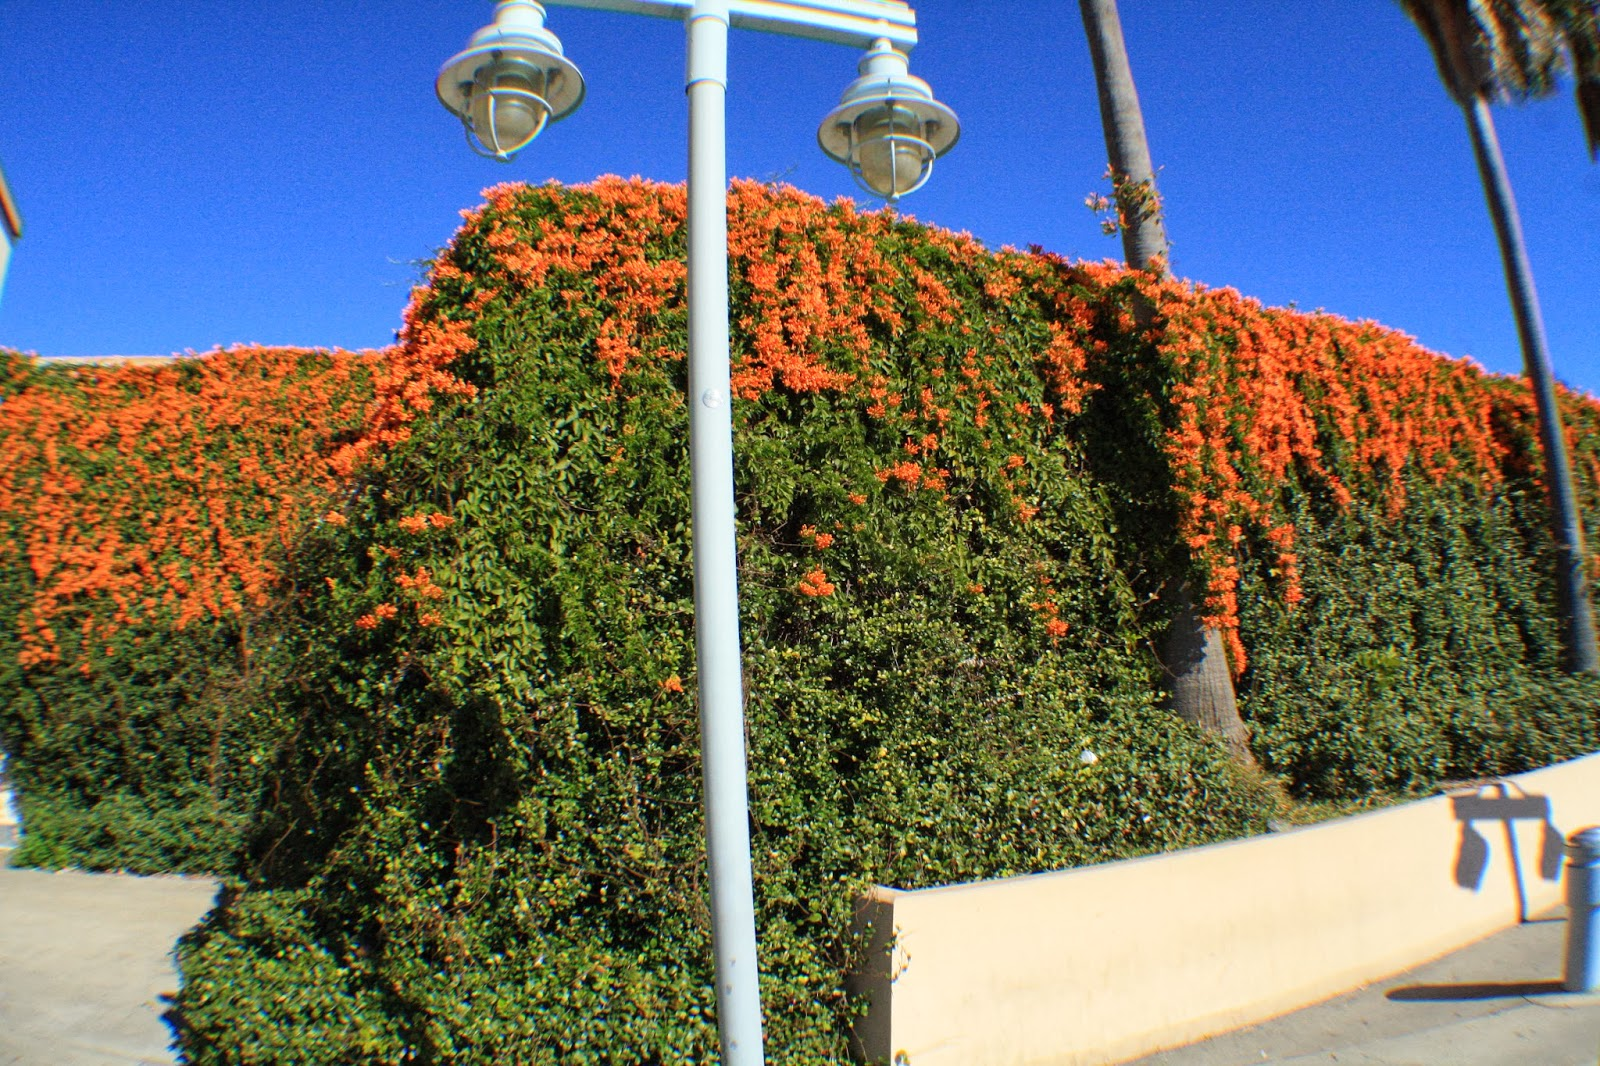 Kevin Songer Florida Green Roof And Living Wall Plant